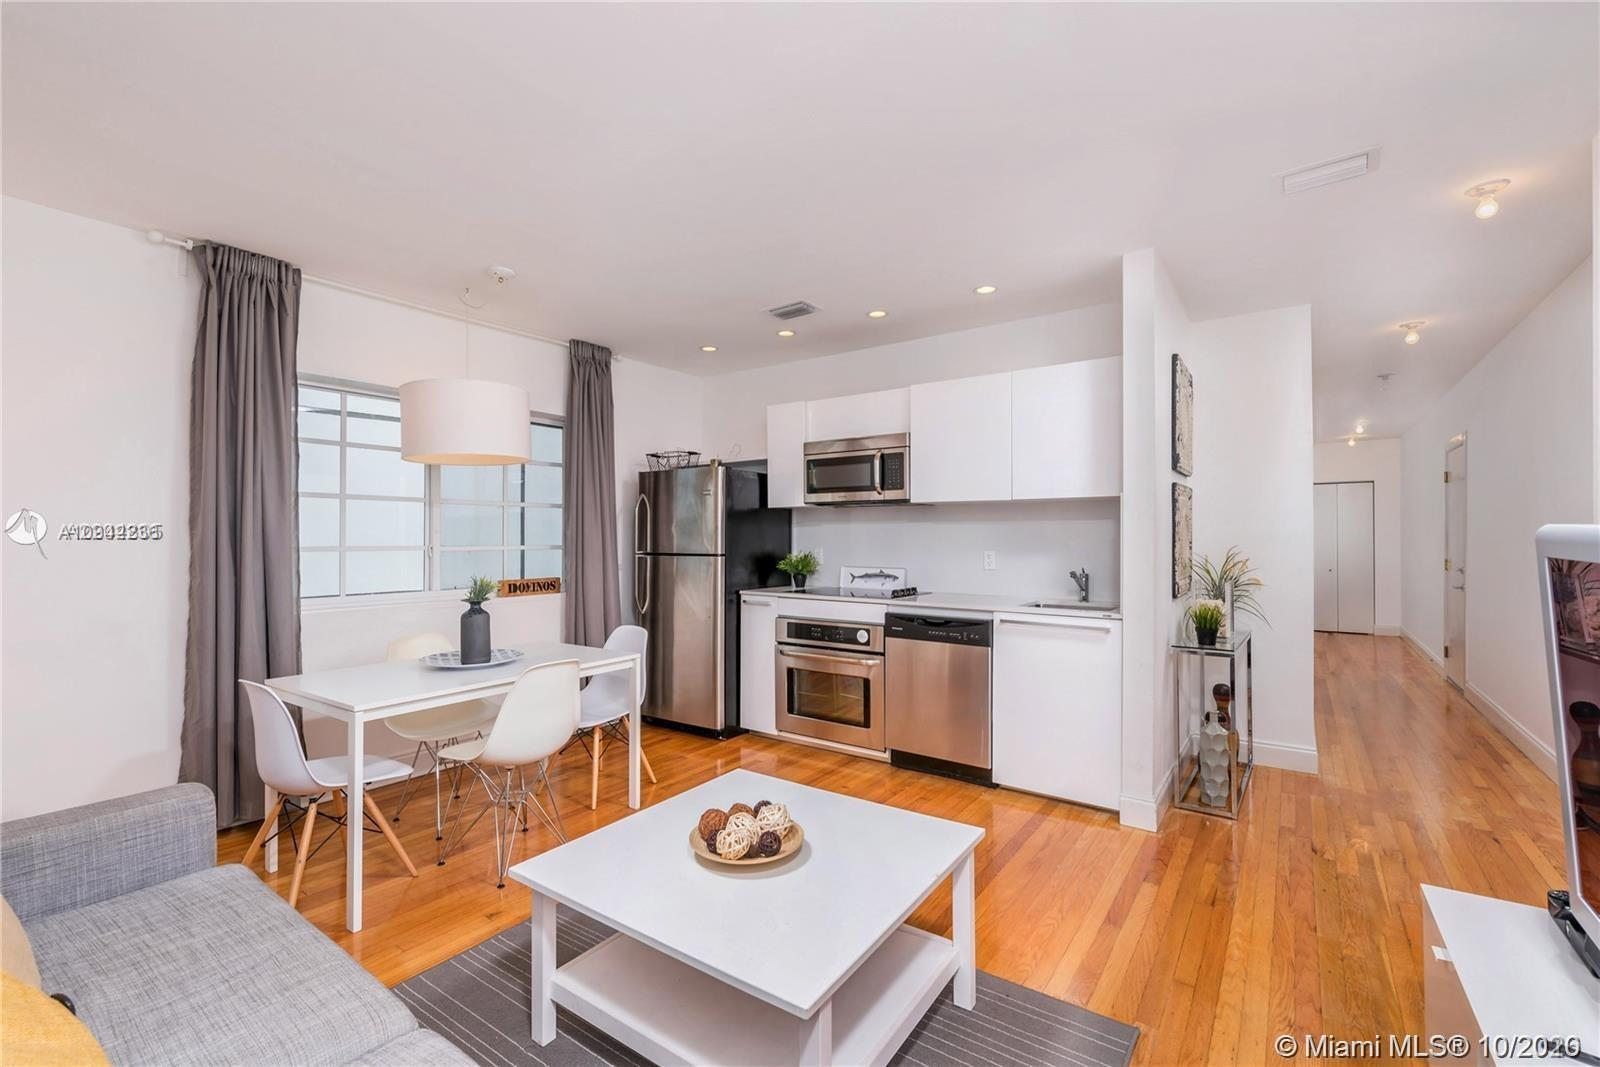 Completely remodeled, 2 bedrooms, 2 baths, rebuilt like new Art Deco Condo Conversion. Great layout,